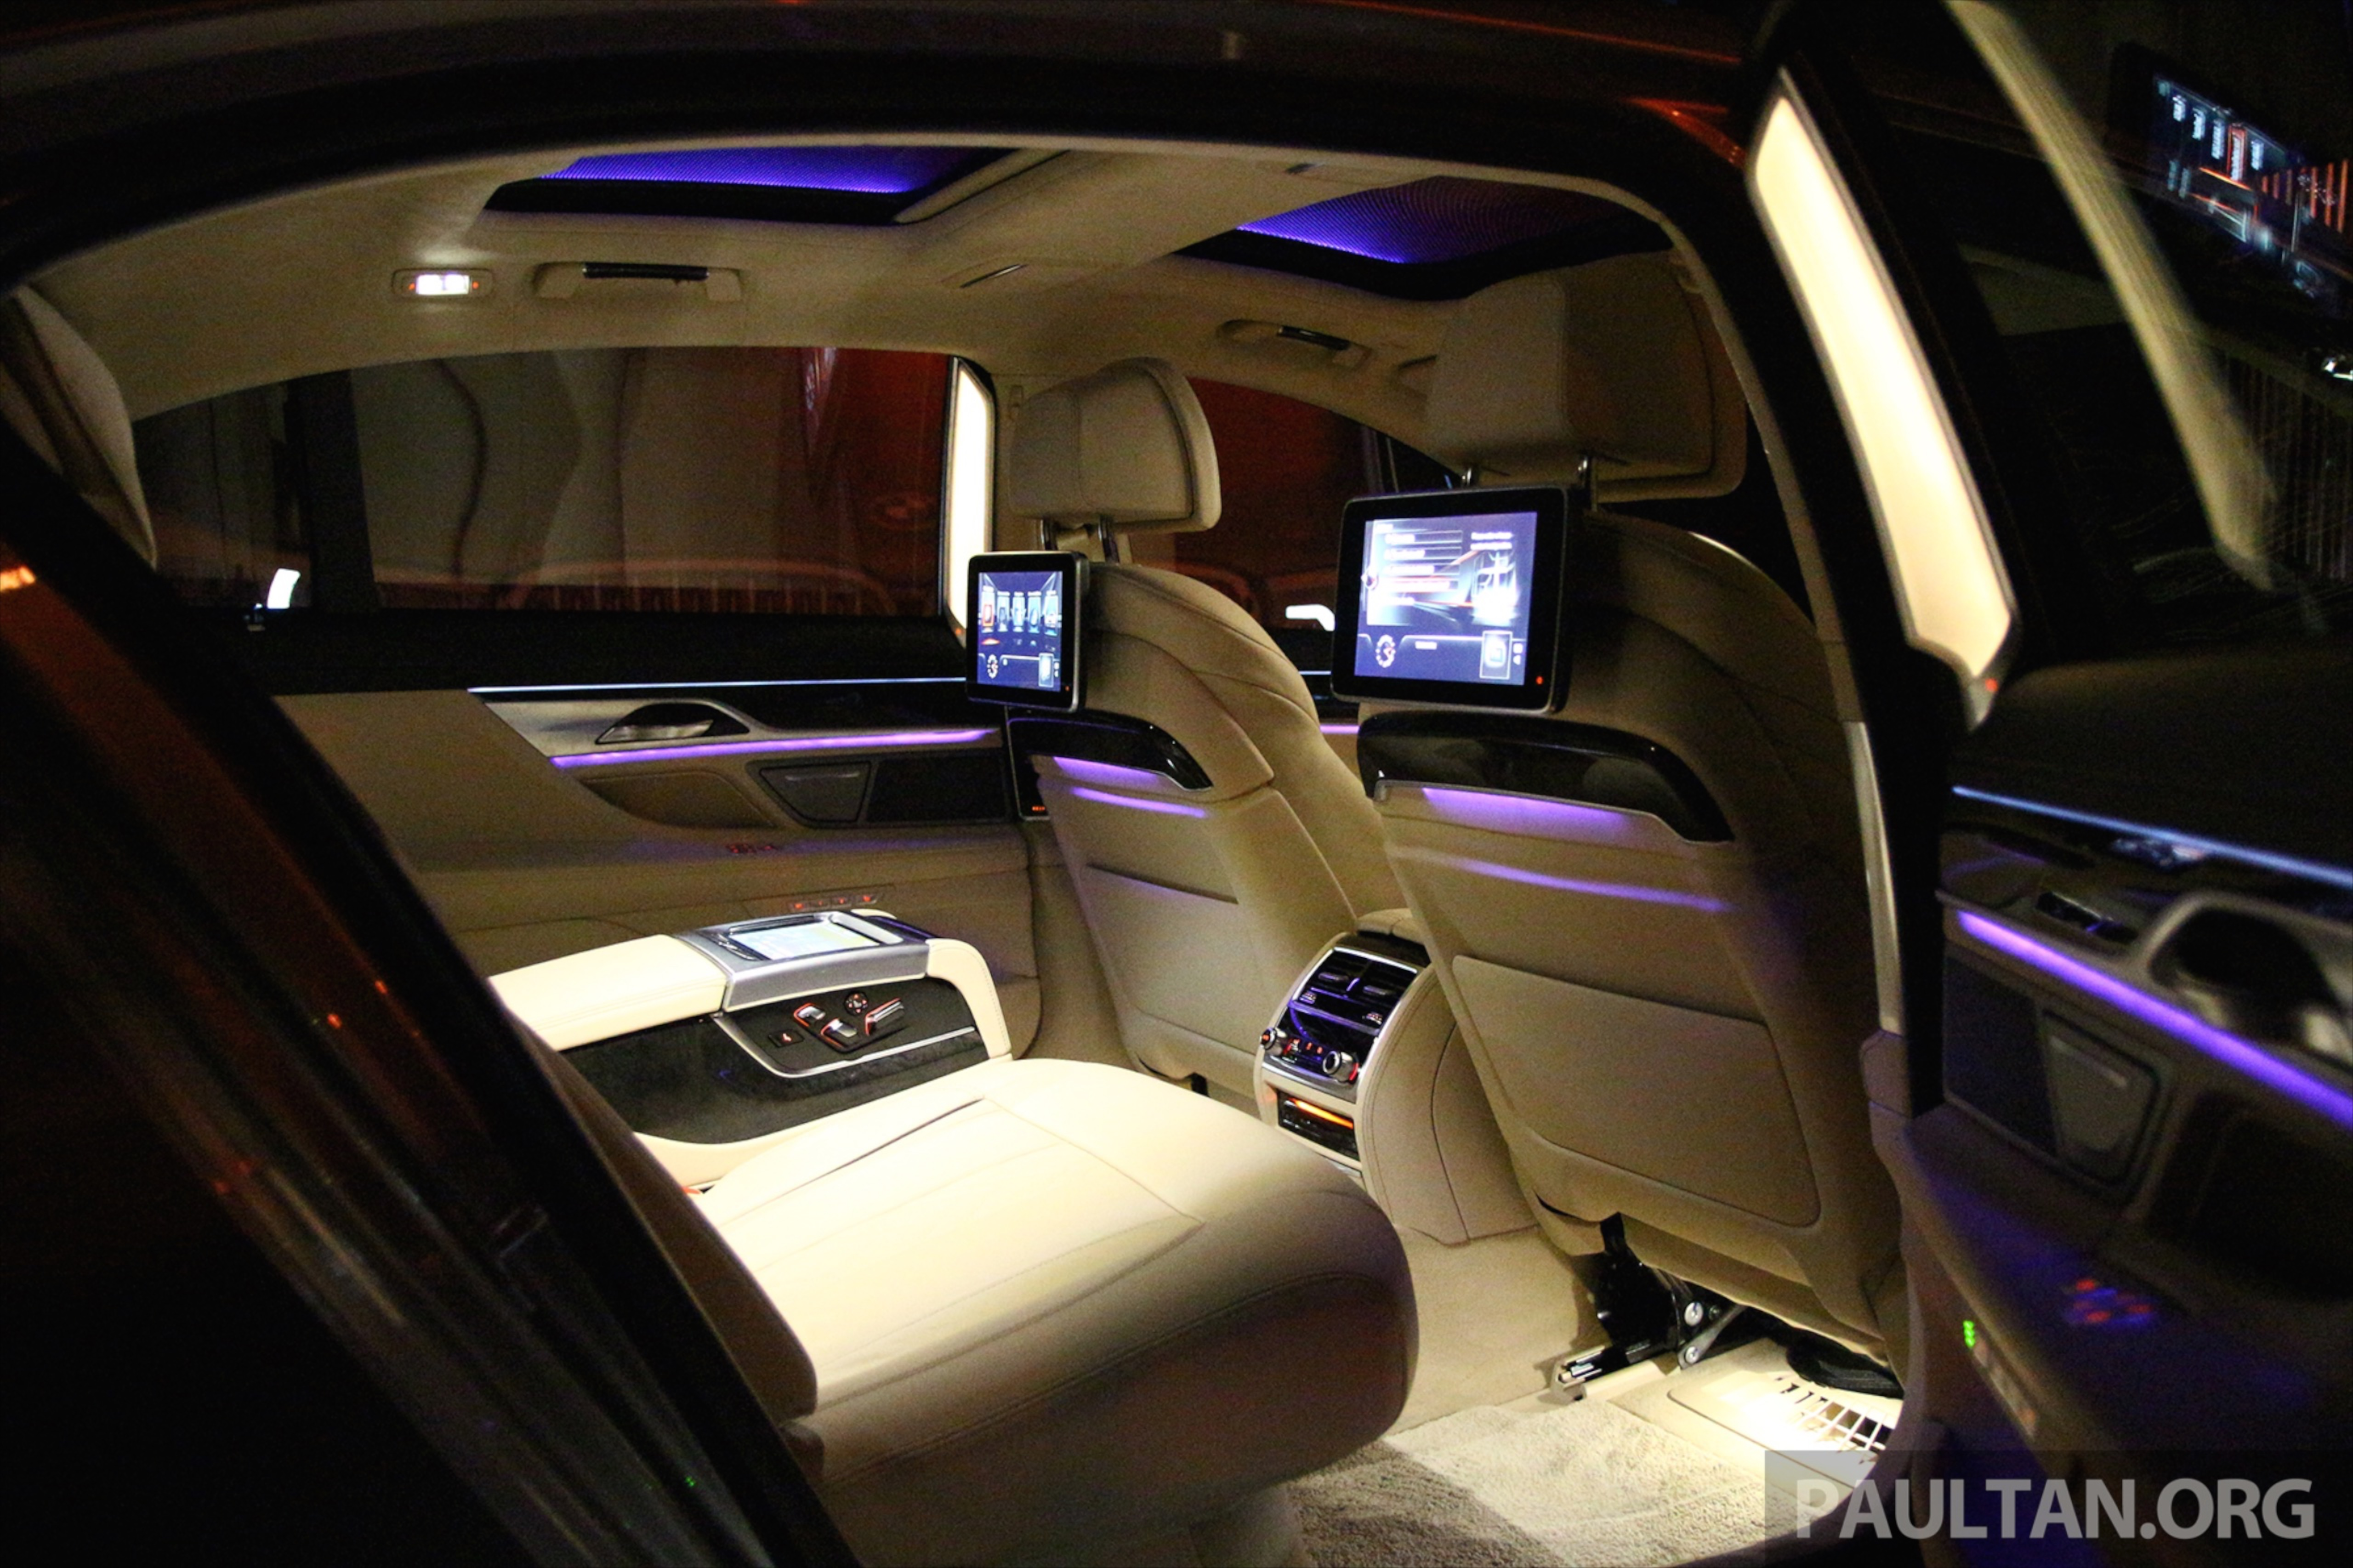 Gallery Bmw 7 Series Sky Lounge Panoramic Roof Image 436548 HD Wallpapers Download free images and photos [musssic.tk]